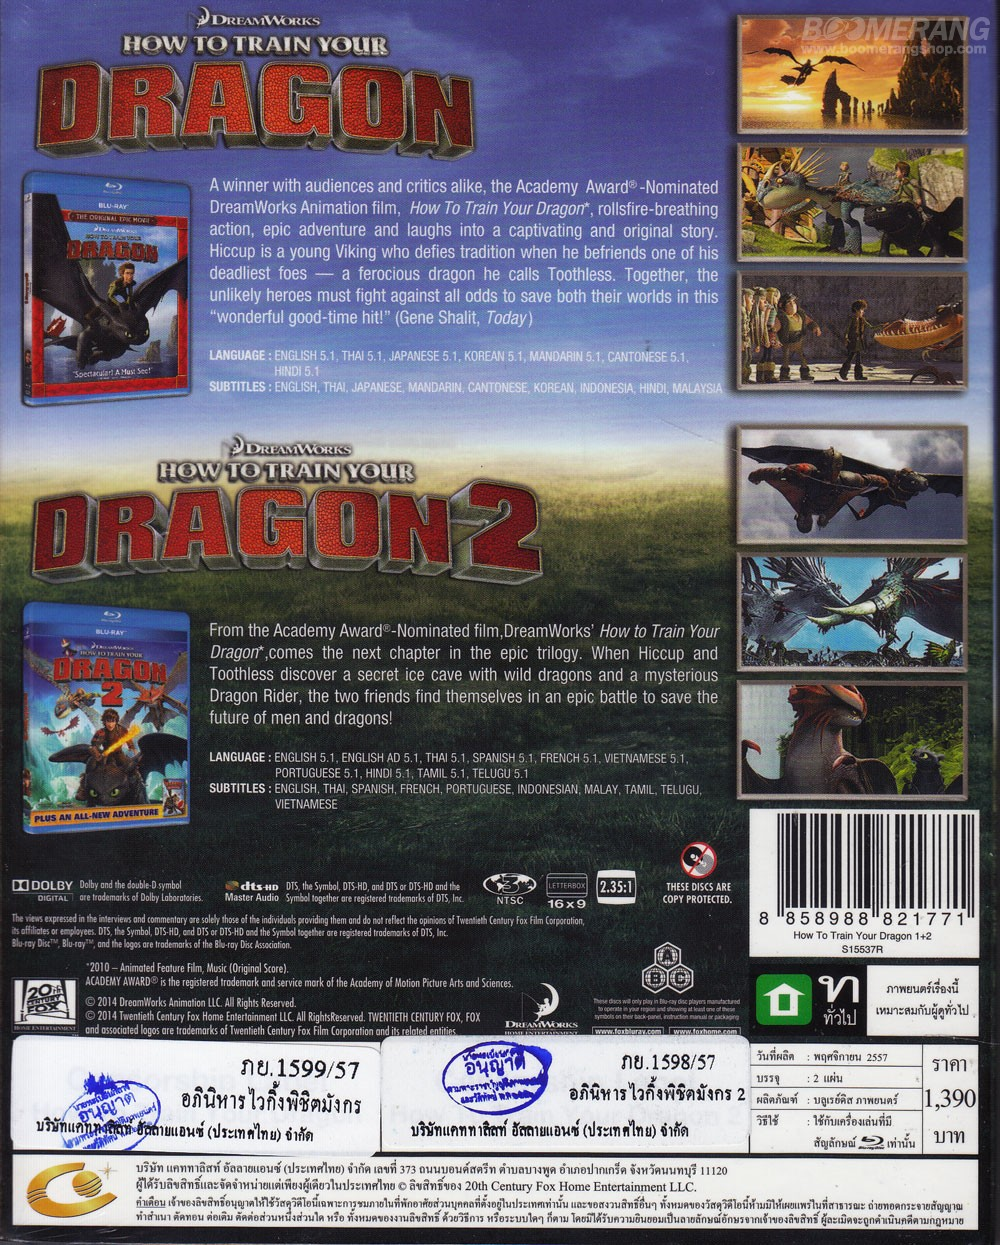 How to train your dragon 12 3d blu ray boomerangshop click ccuart Image collections